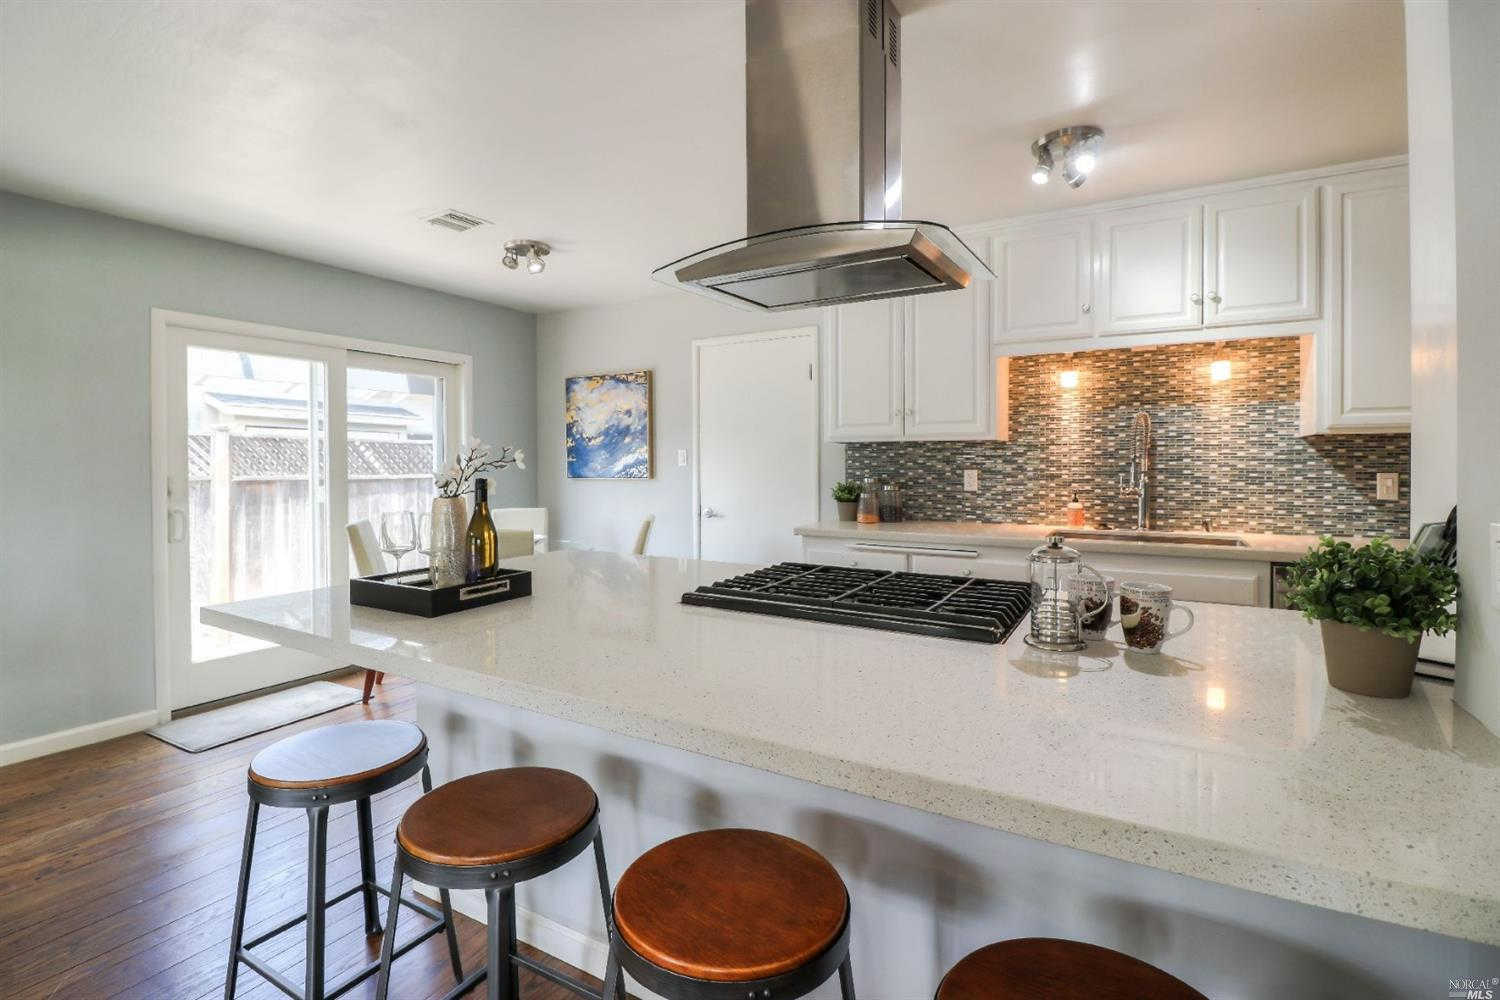 11 Knight Drive, San Rafael, CA 94901 now has a new price of $1,149,000!